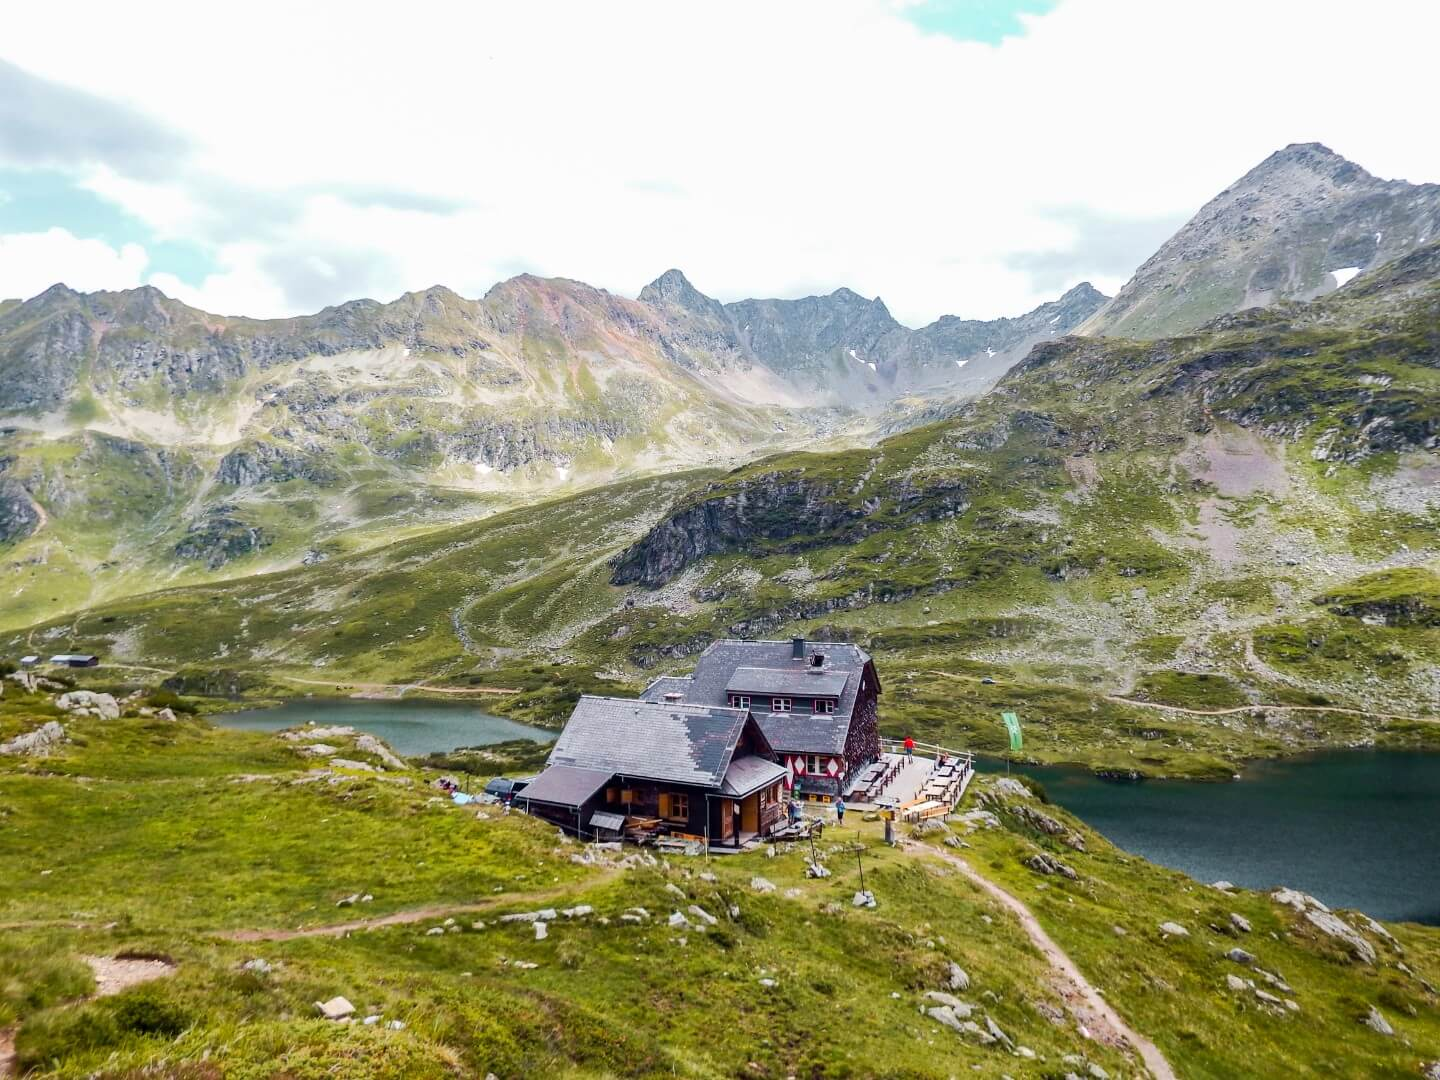 Ignaz-Mattis Hütte, Lower Giglach Lake, Schladminger Tauern, Austria - Best Day Hikes in Austria